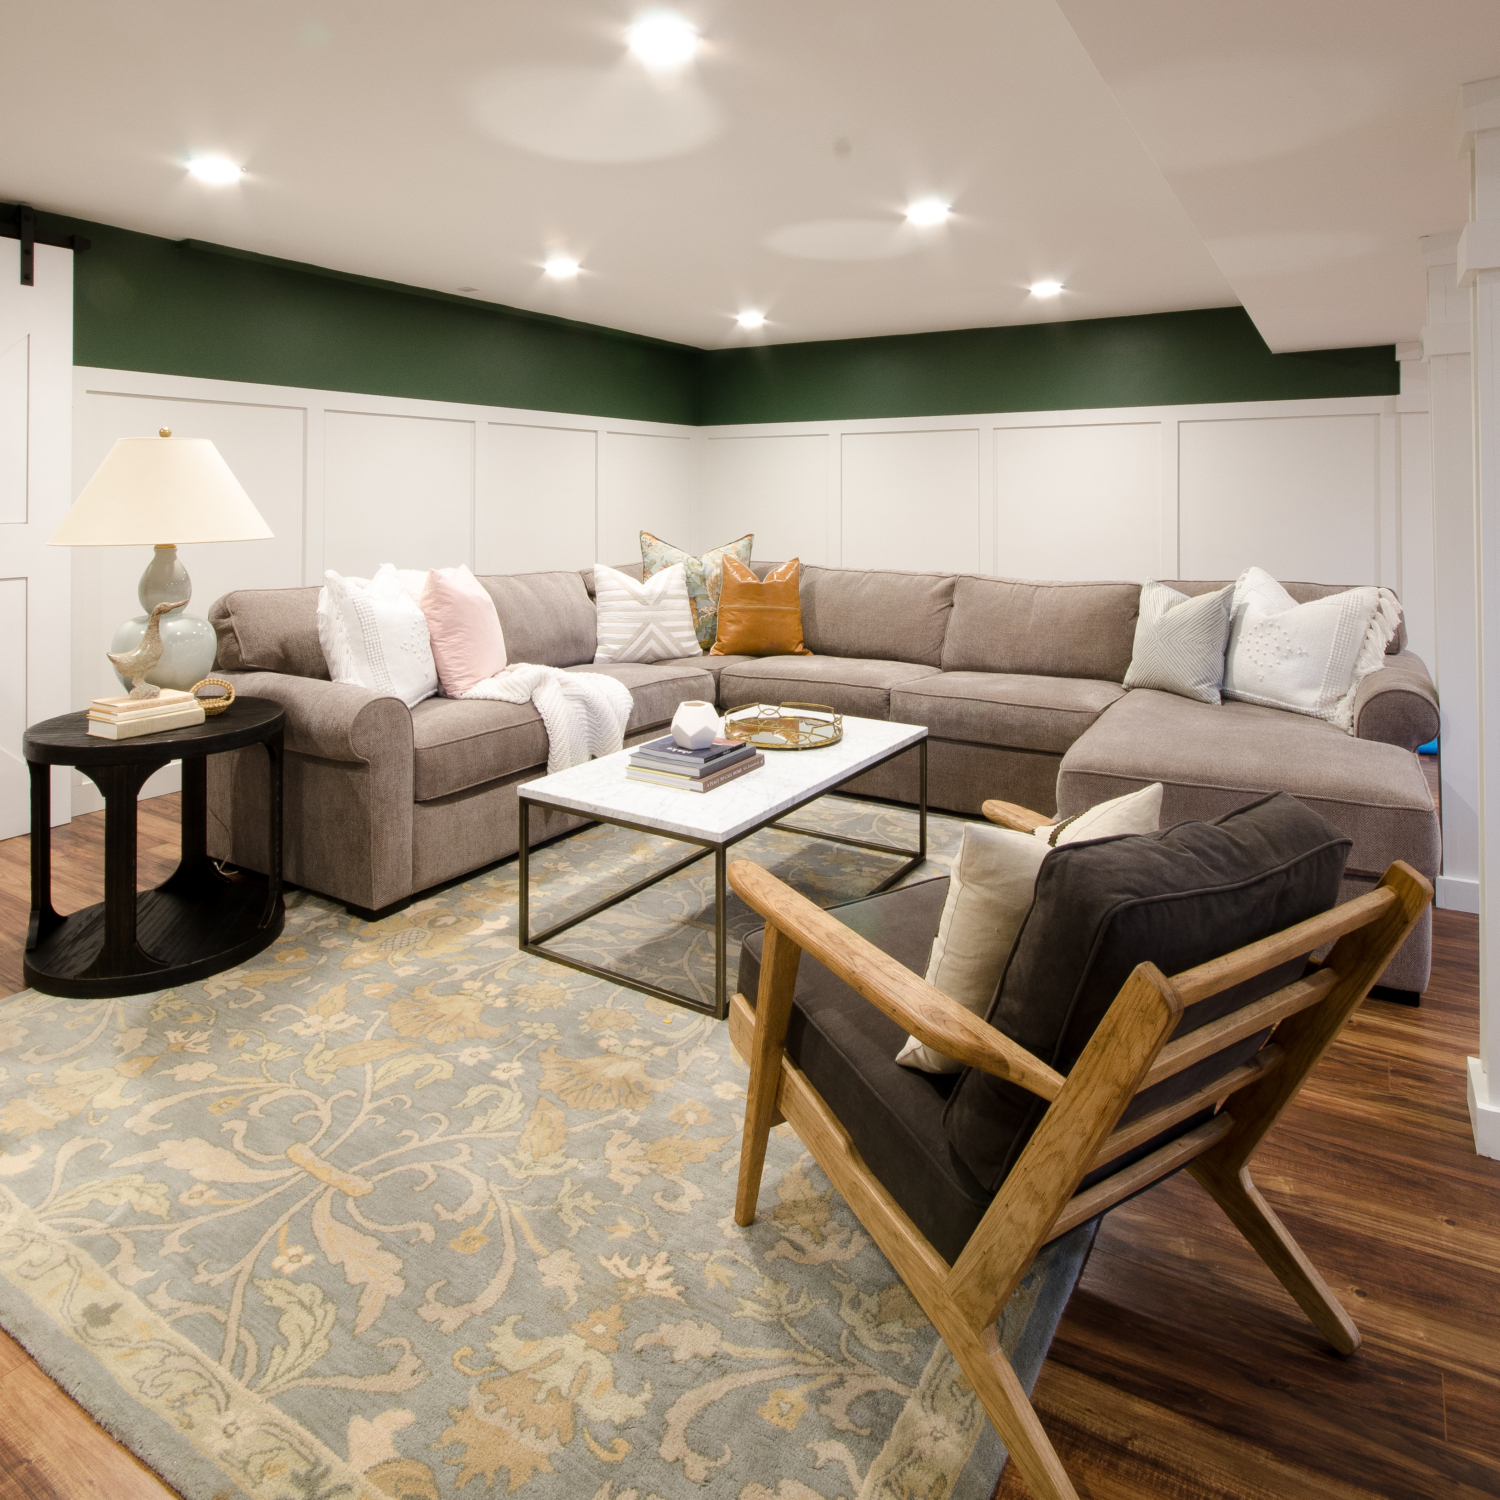 Finished basement family room and playroom with full renovation details. Chic, comfortable, and family-friendly!